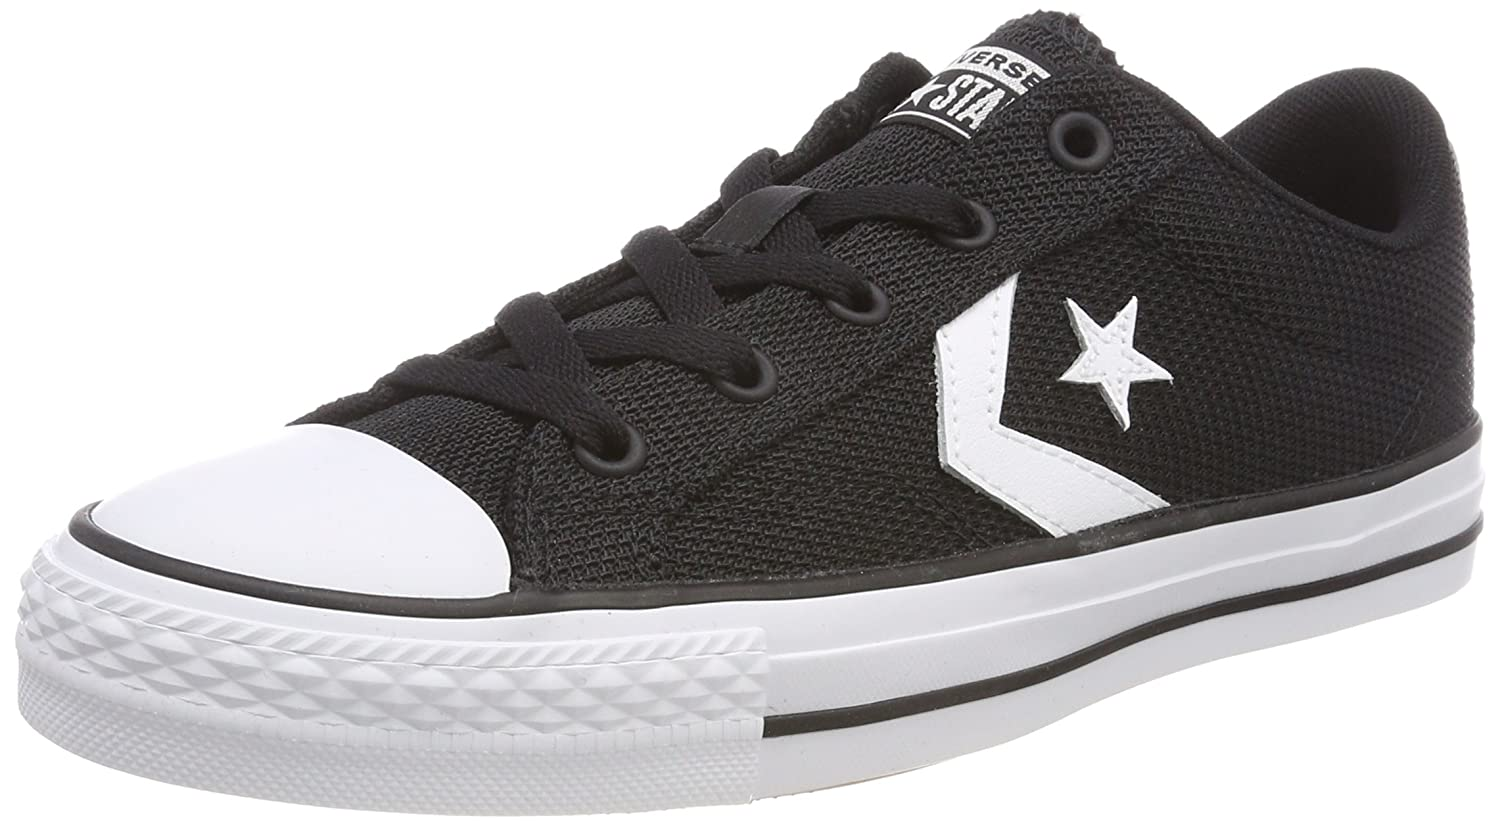 TALLA 40 EU. Converse Star Player Ox White/Black, Zapatillas Unisex Adulto